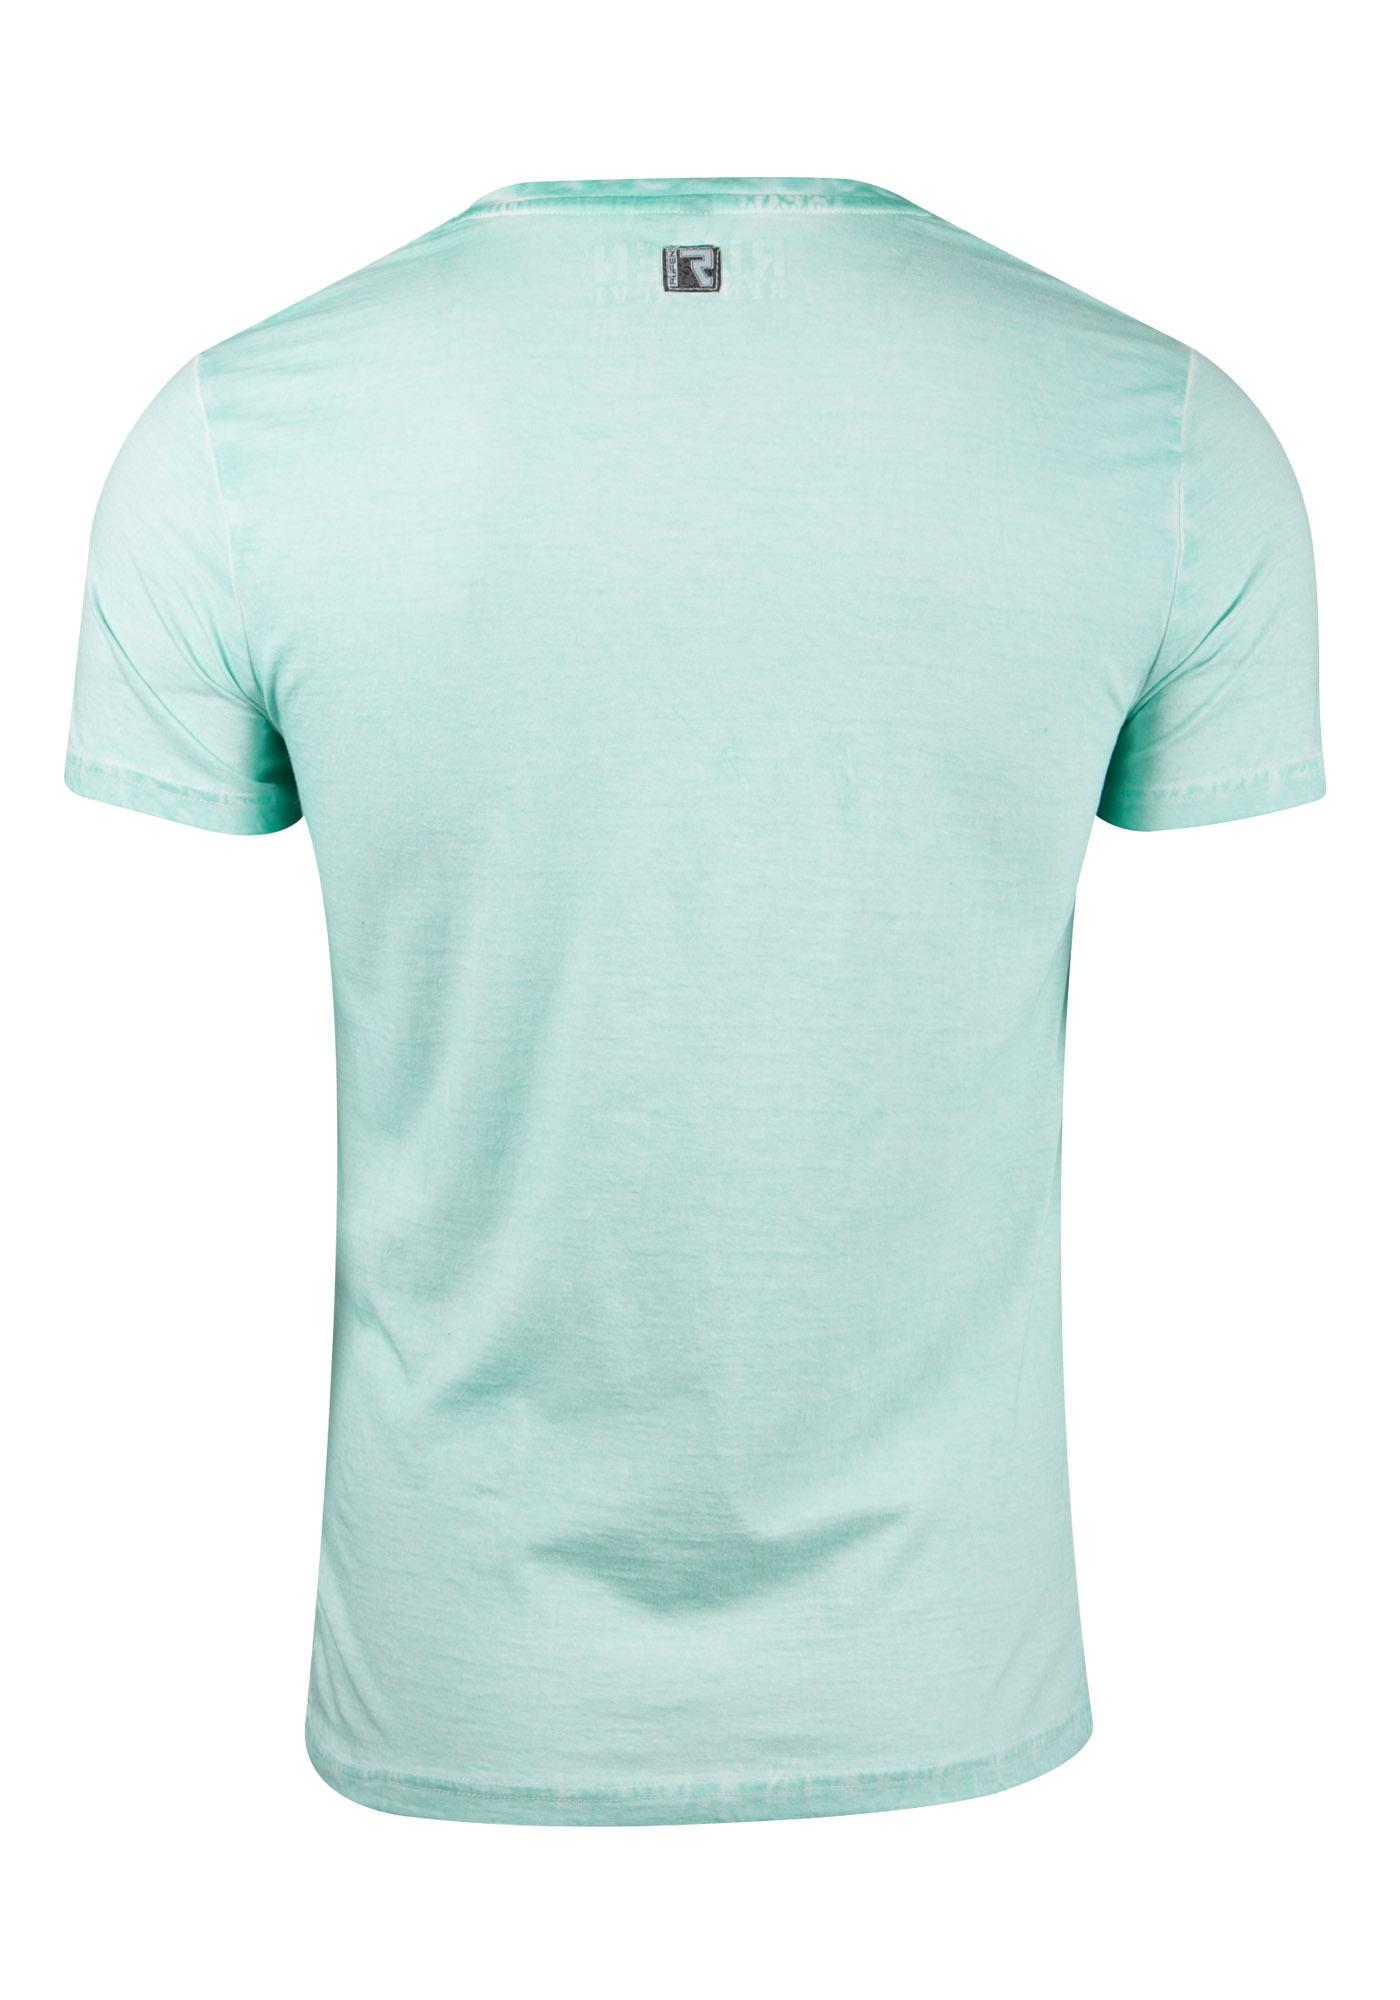 738cd3623 ... Mens Western Graphic Tee, SPEARMINT, hi-res